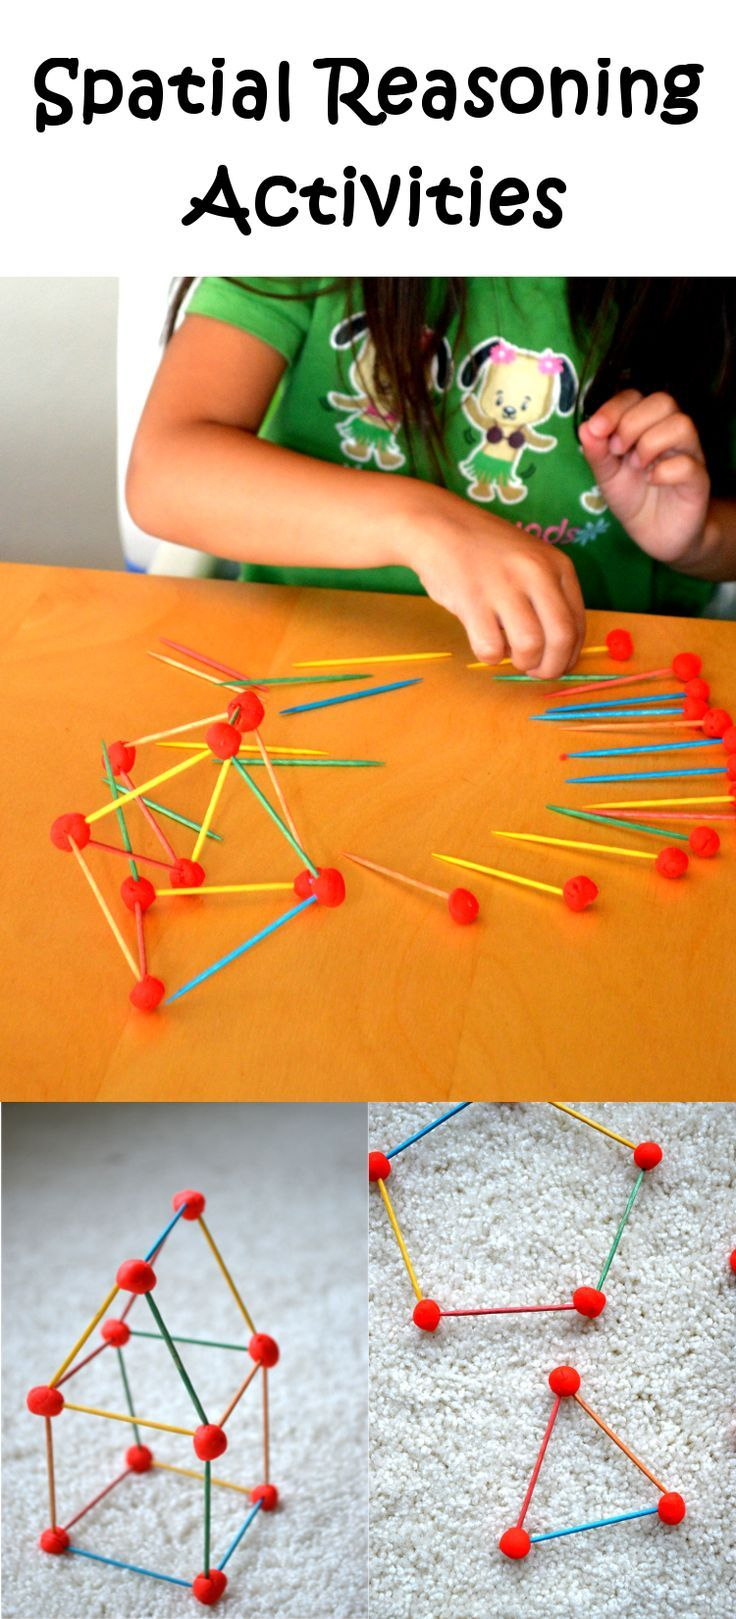 Spatial Reasoning - Visualize Shapes Through Play ...